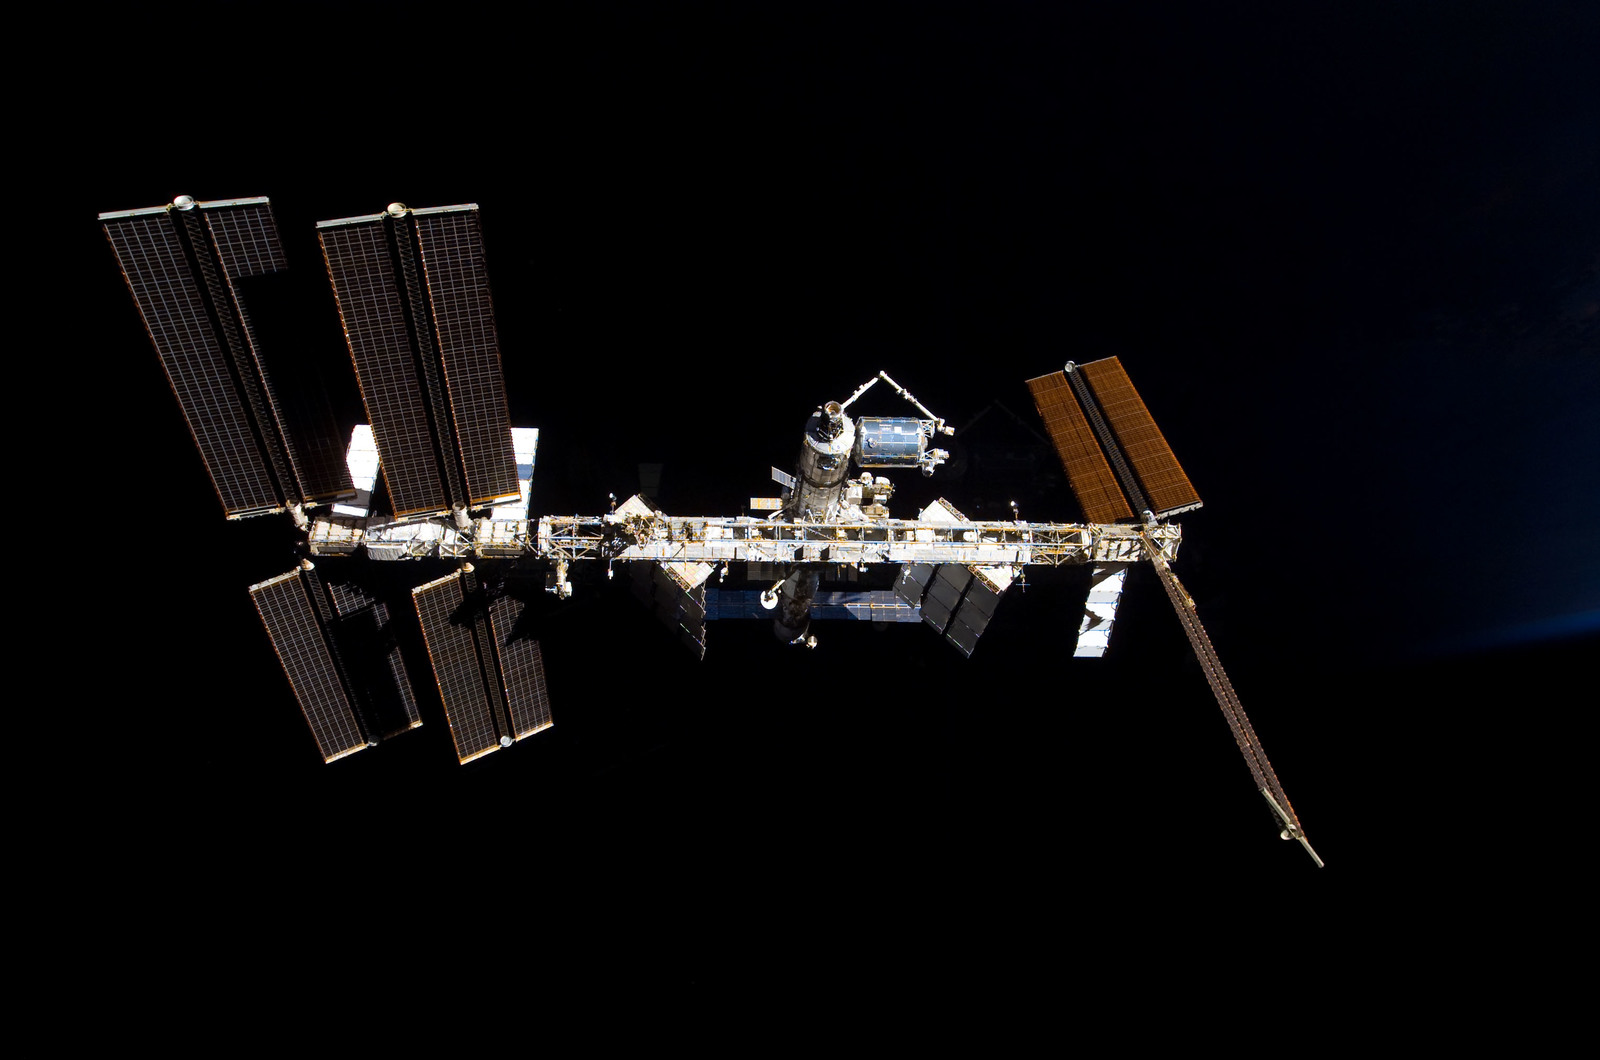 S122E009854 - STS-122 - View of ISS after STS-122 Undocking